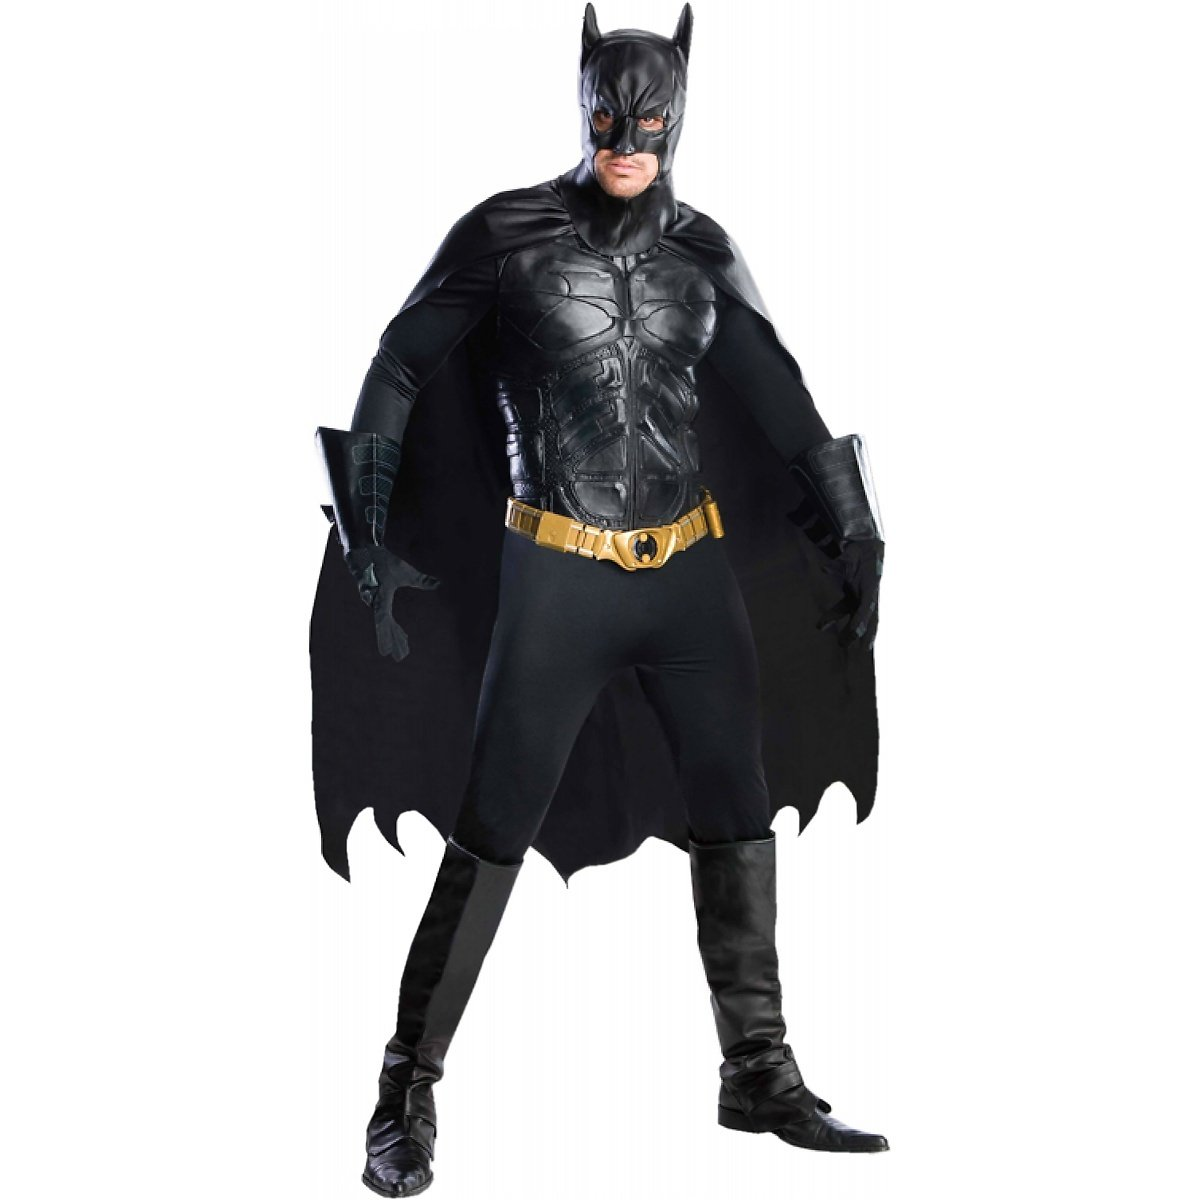 Rubie's Men's The Dark Knight Rises Deluxe Batman Costume, Black, Medium